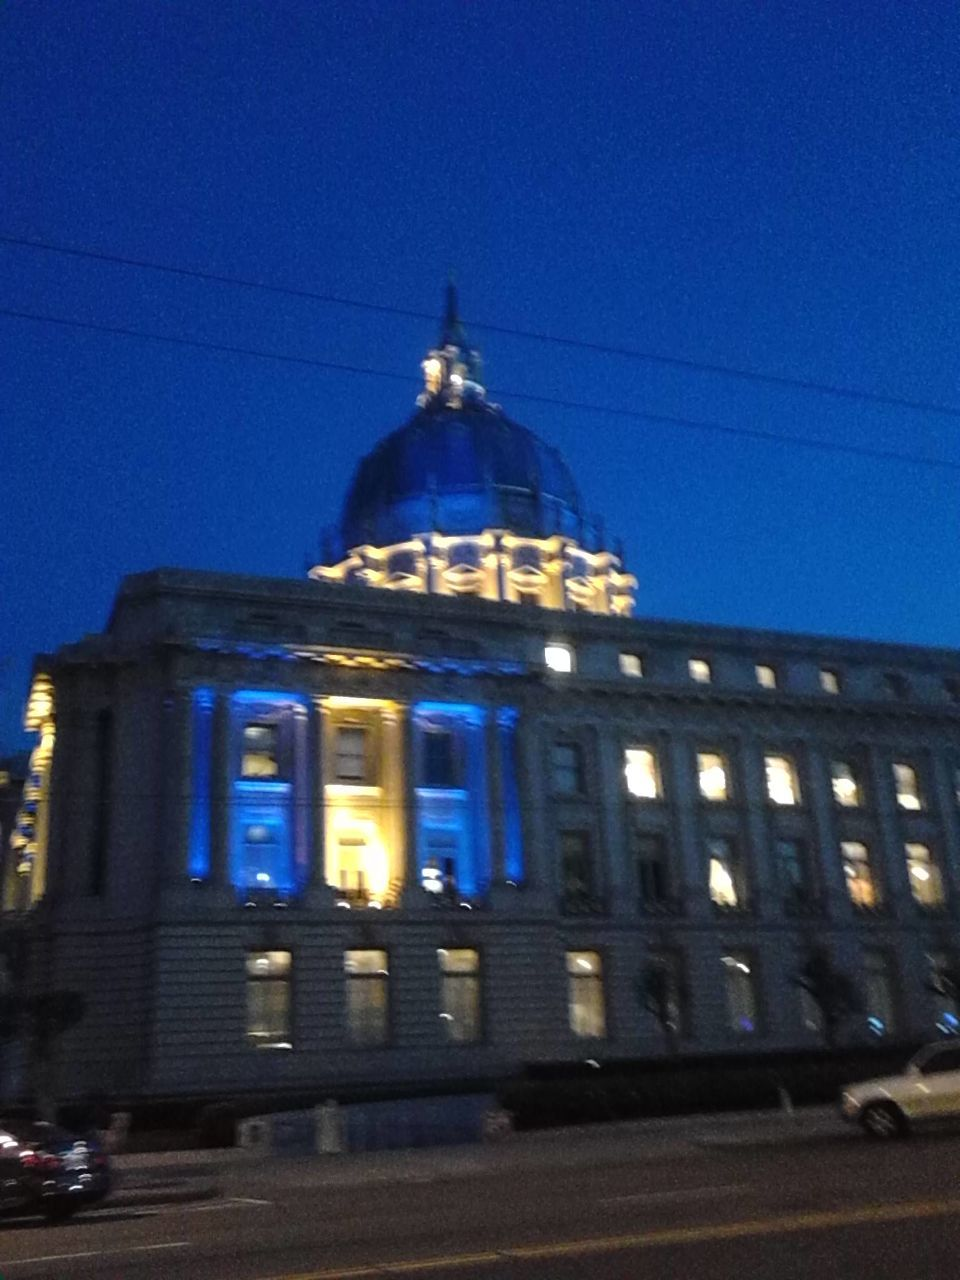 architecture, building exterior, illuminated, built structure, blue, night, outdoors, history, clear sky, no people, dome, low angle view, sky, city